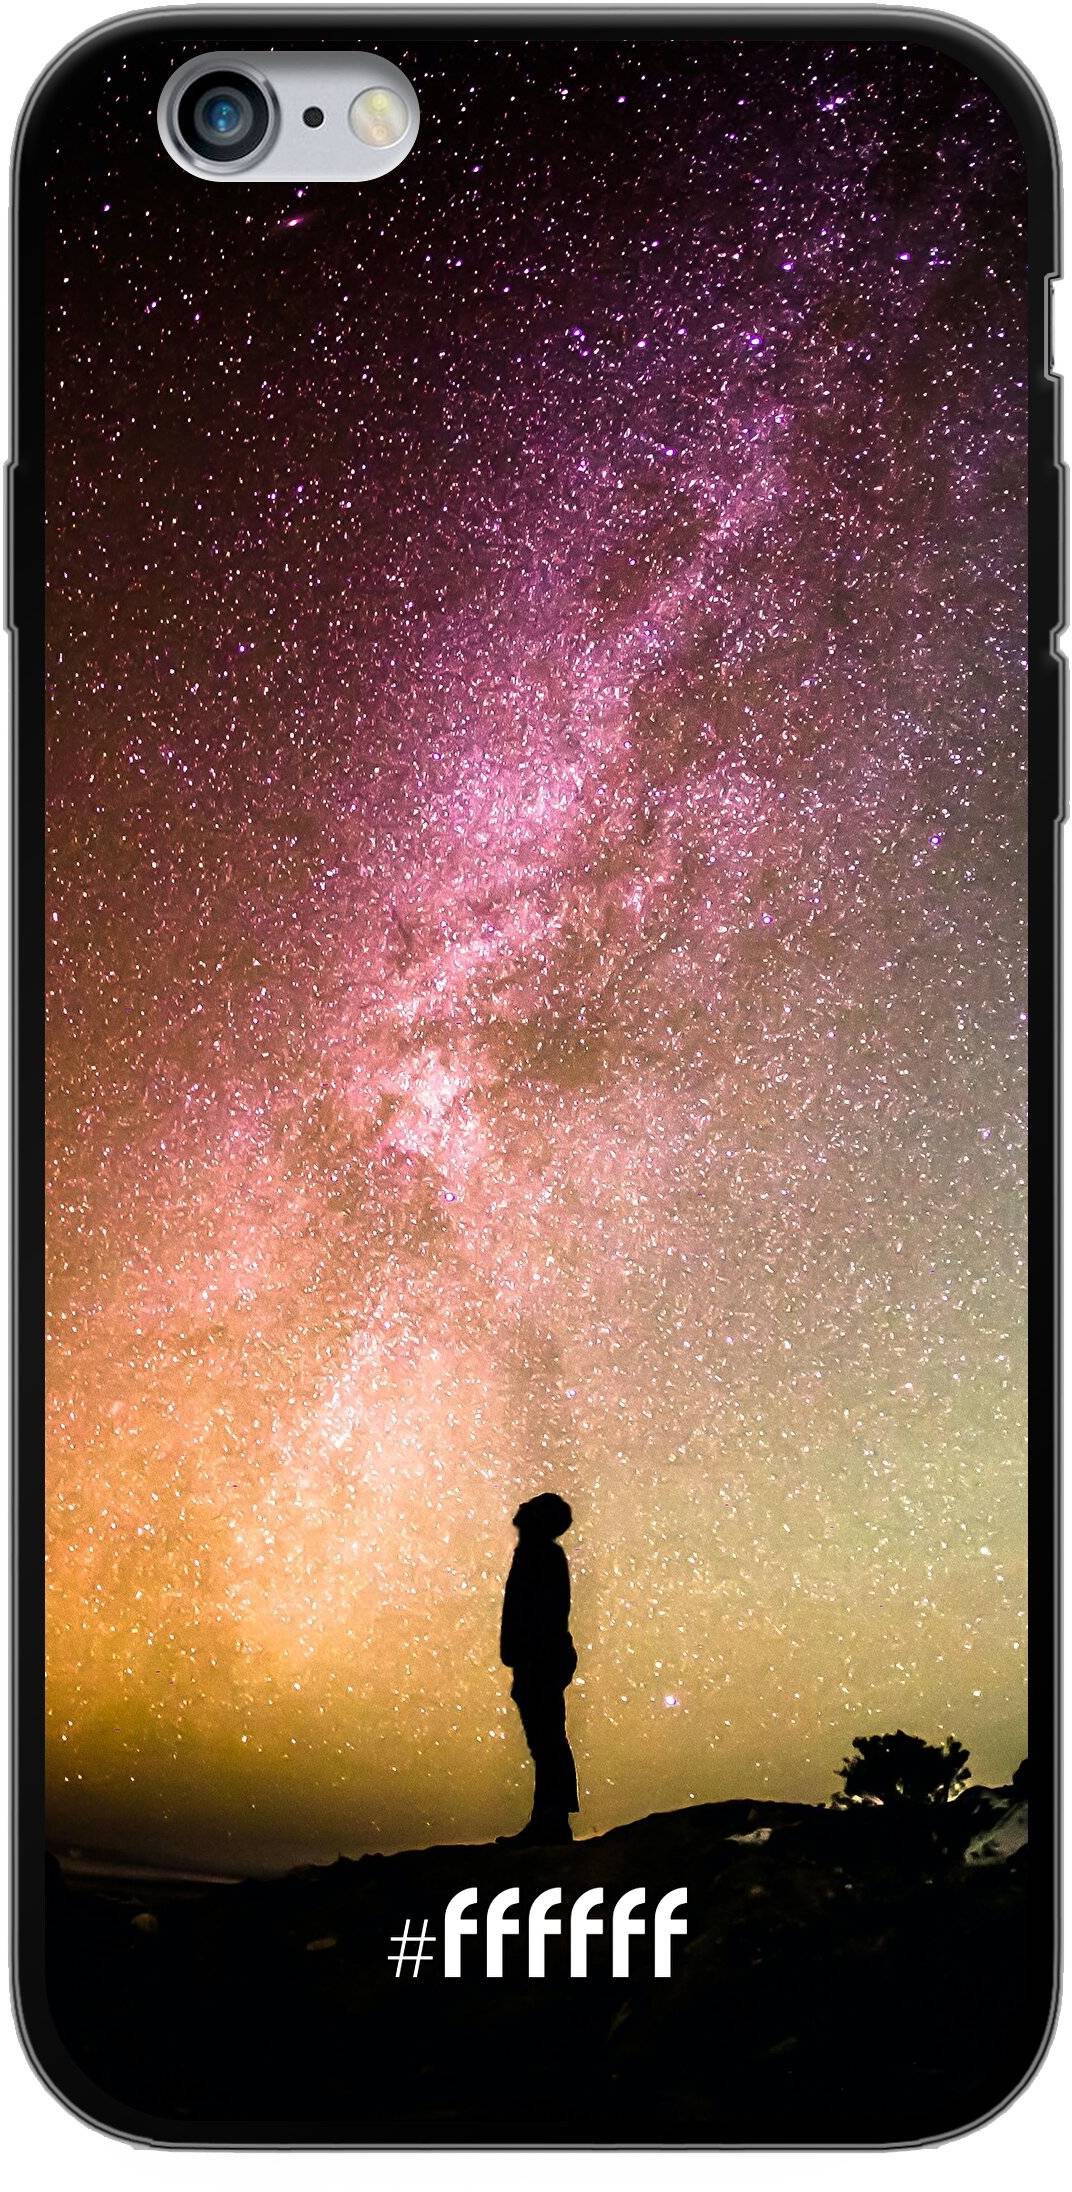 Watching the Stars iPhone 6s